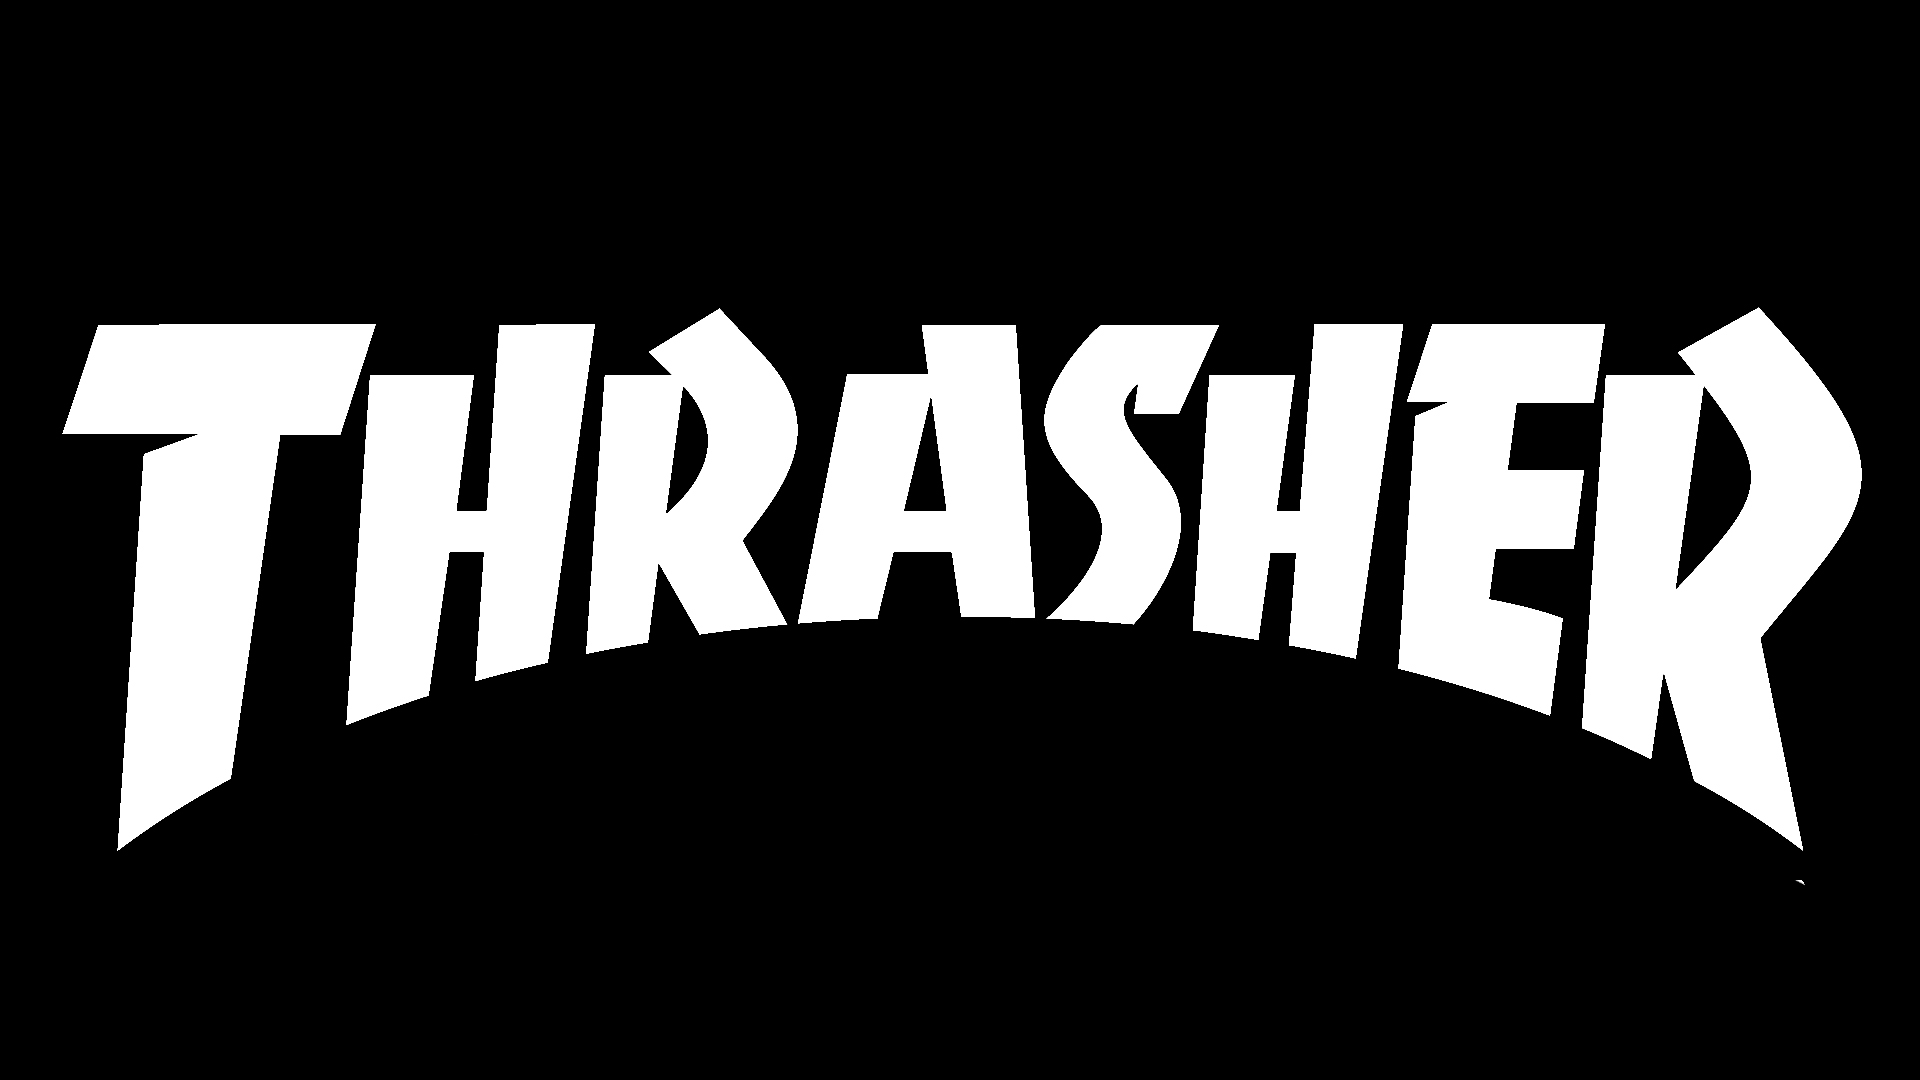 Meaning Thrasher logo and symbol.